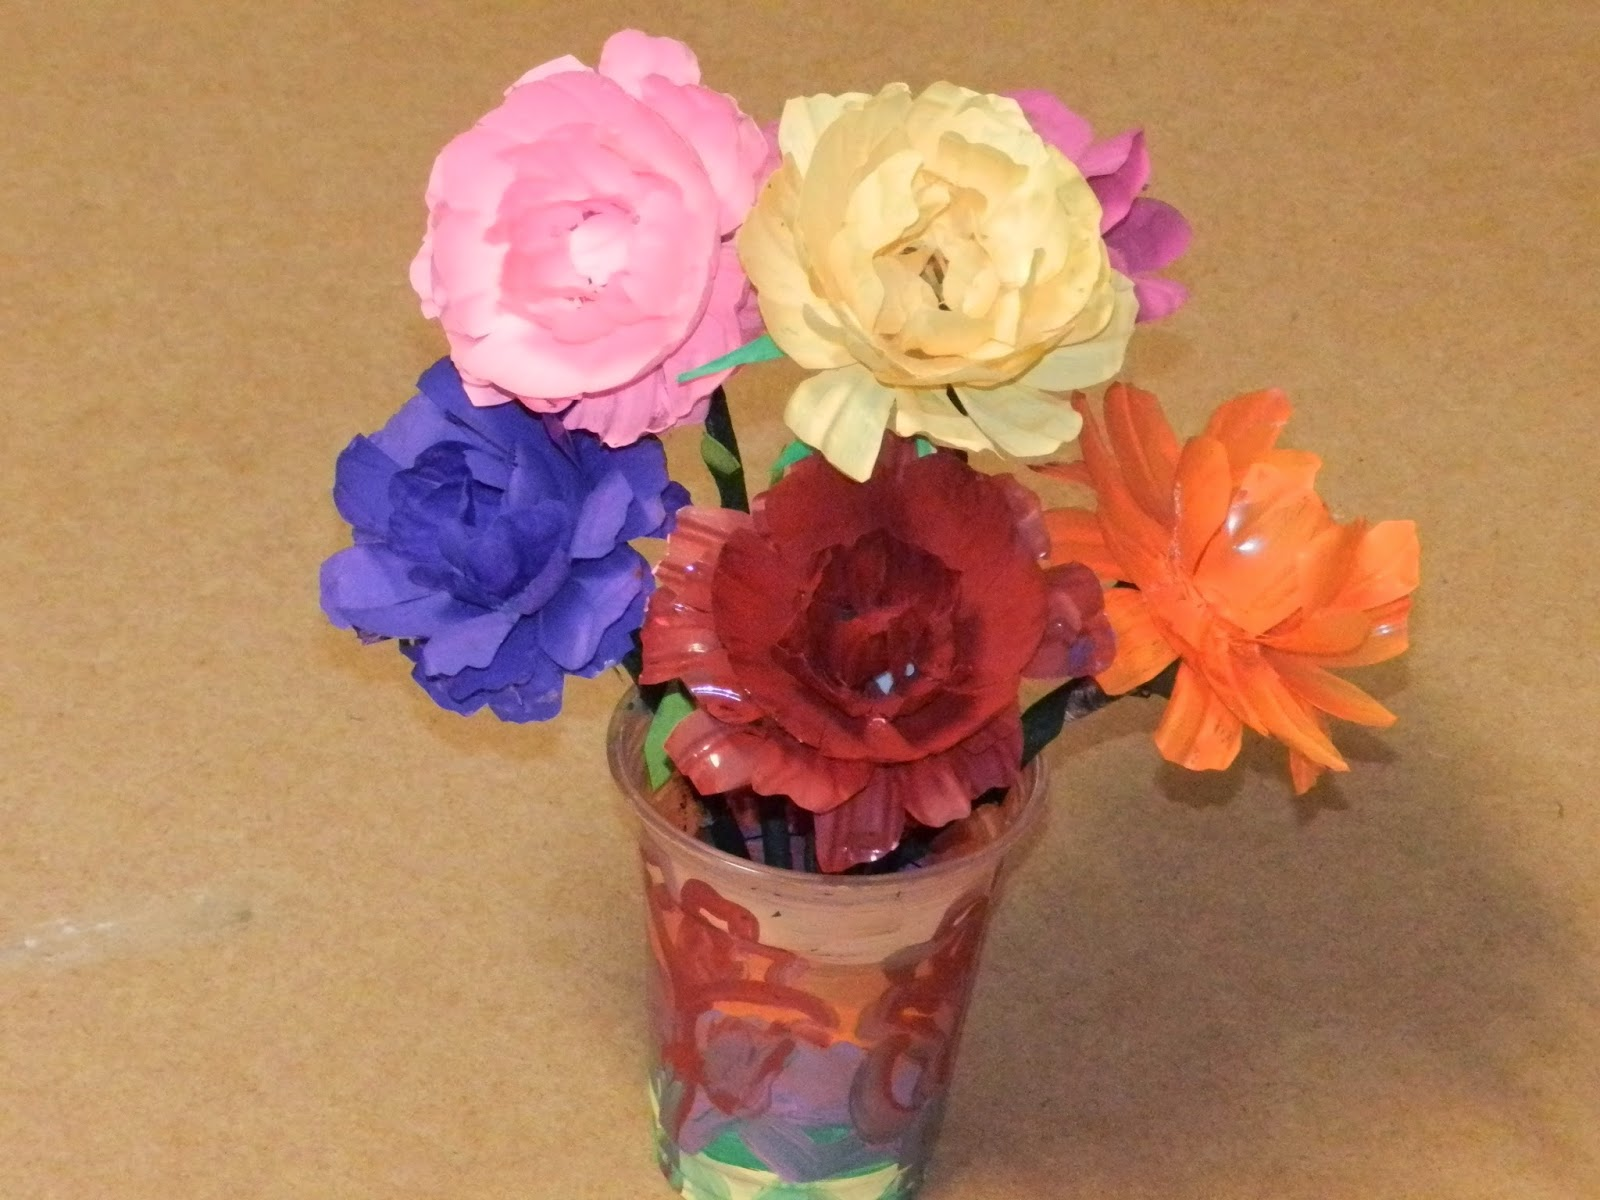 Creative diy crafts recycle and diy rhinoculous flowers for Waste crafts making